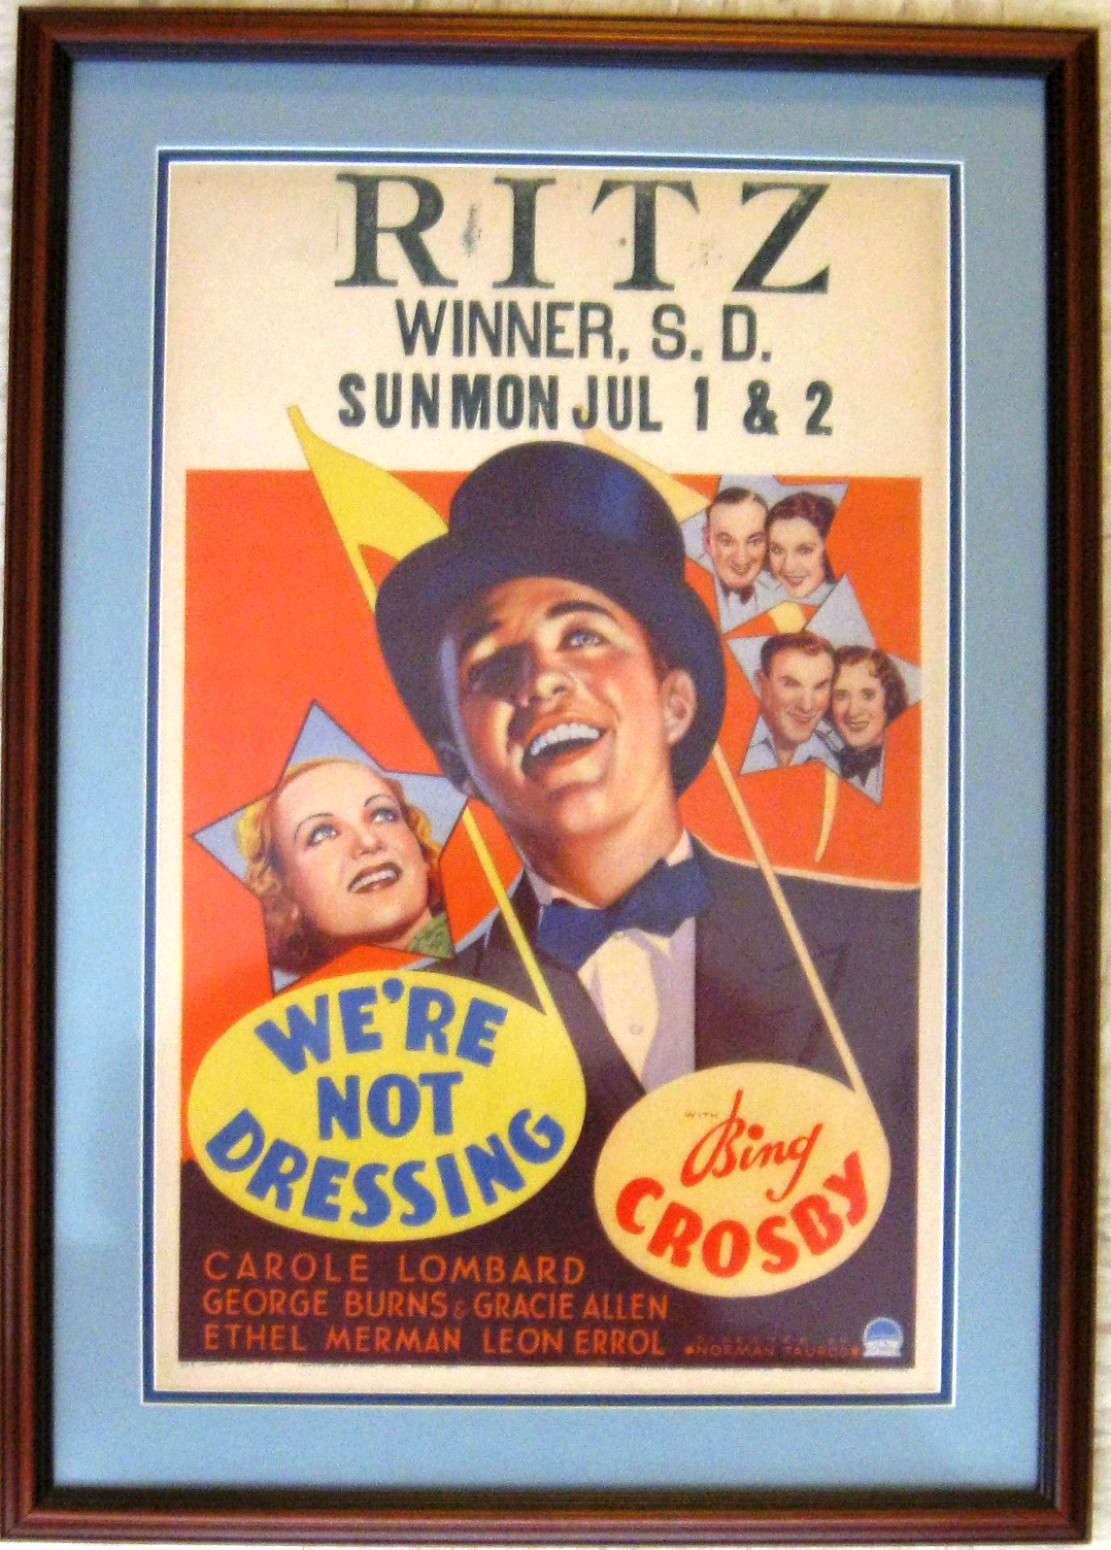 carole lombard we're not dressing window card 01a